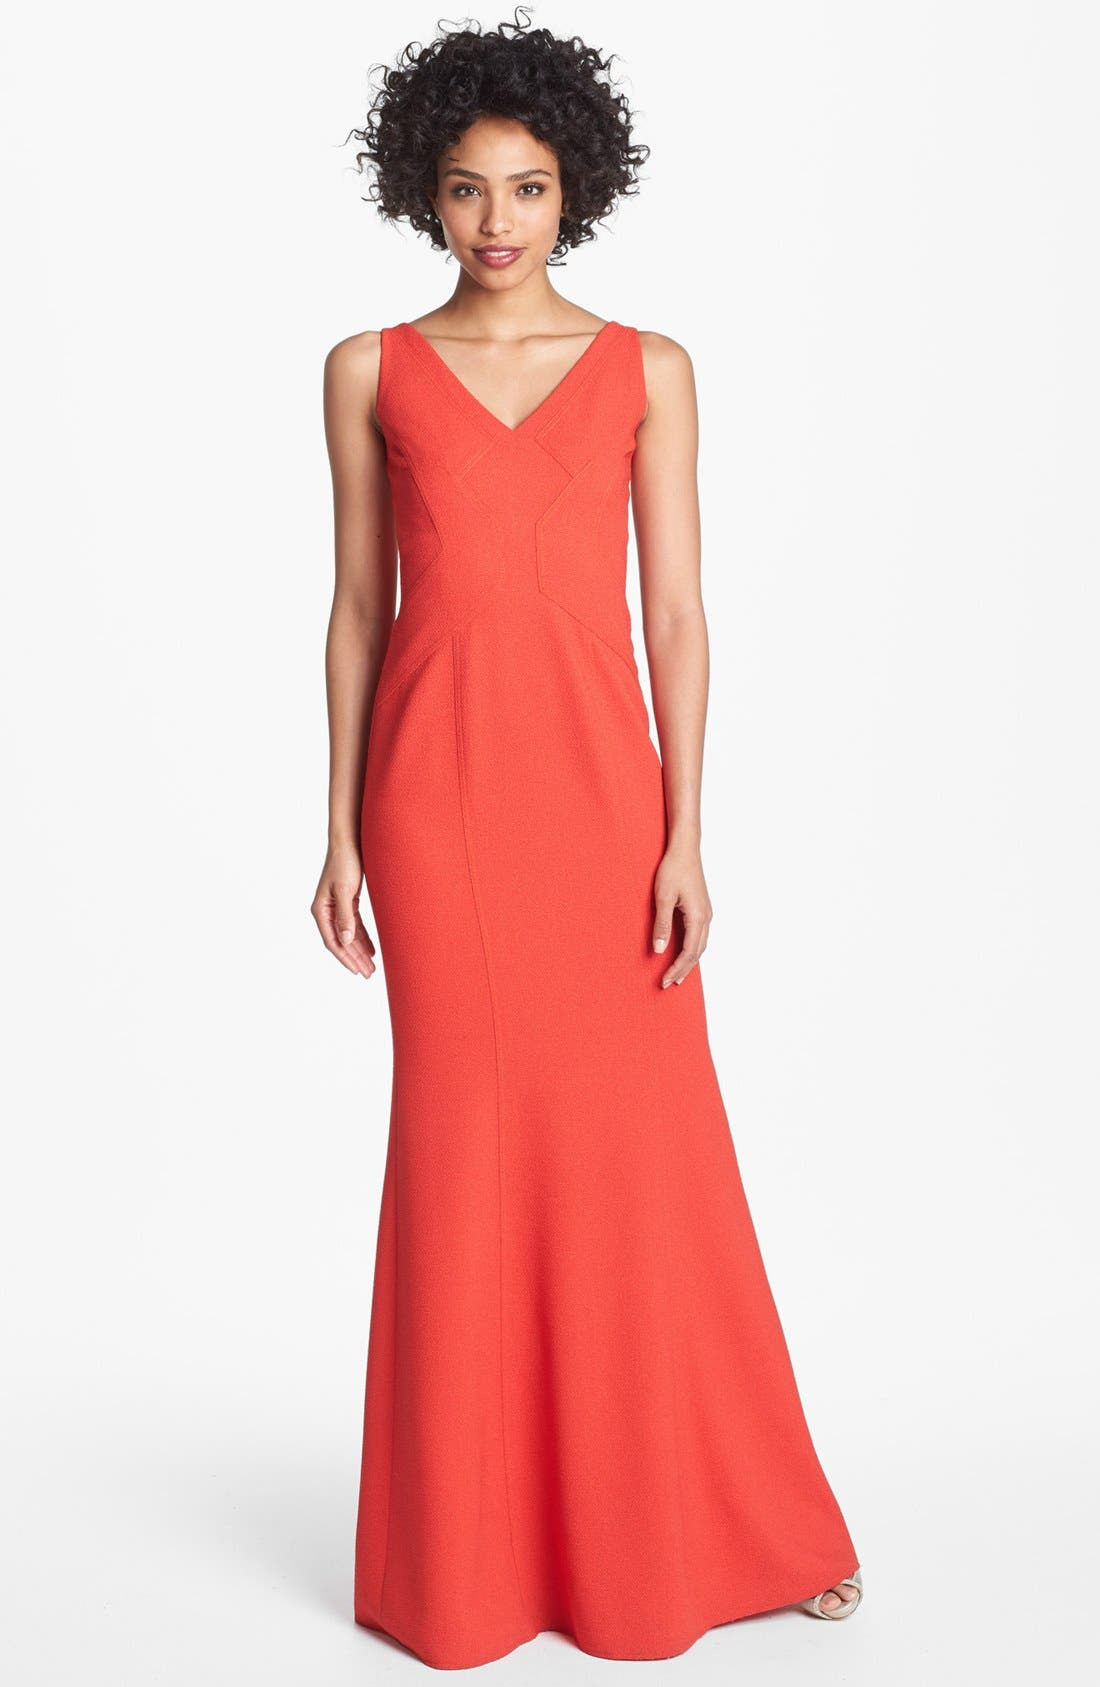 Alternate Image 1 Selected - David Meister Seamed Crepe Trumpet Dress